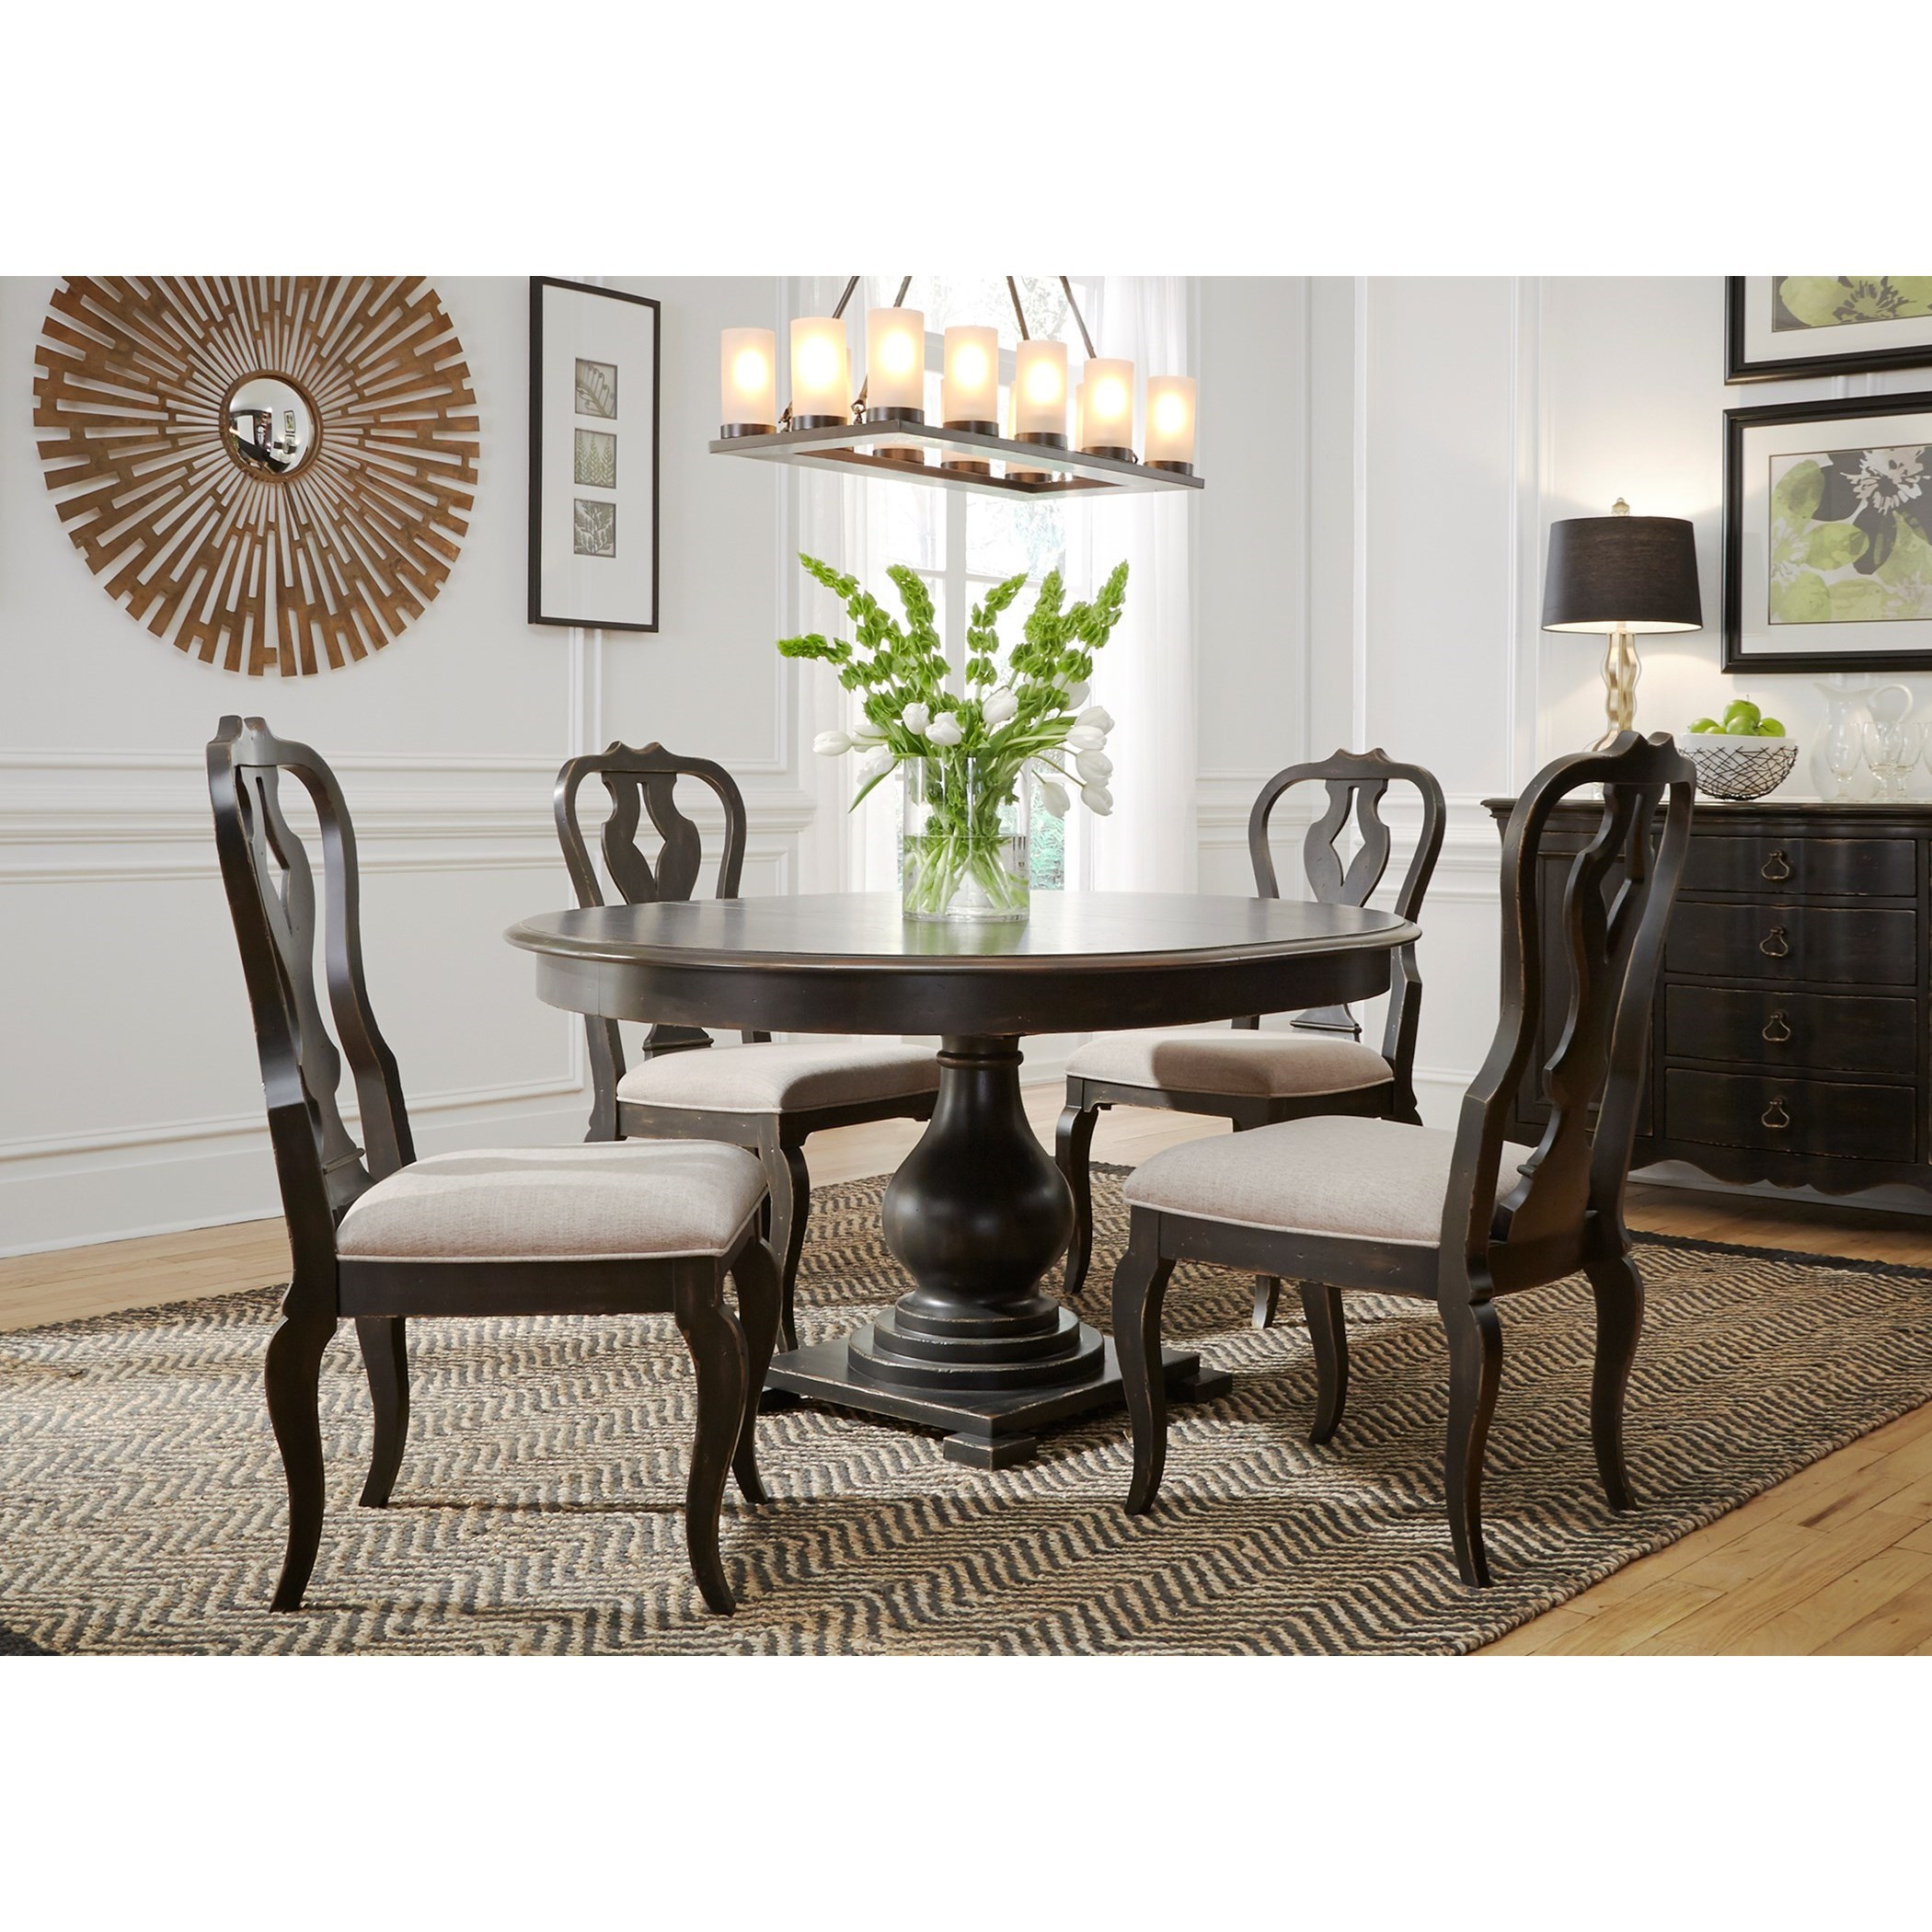 Chesapeake Dining Room Group by Liberty Furniture at Northeast Factory Direct